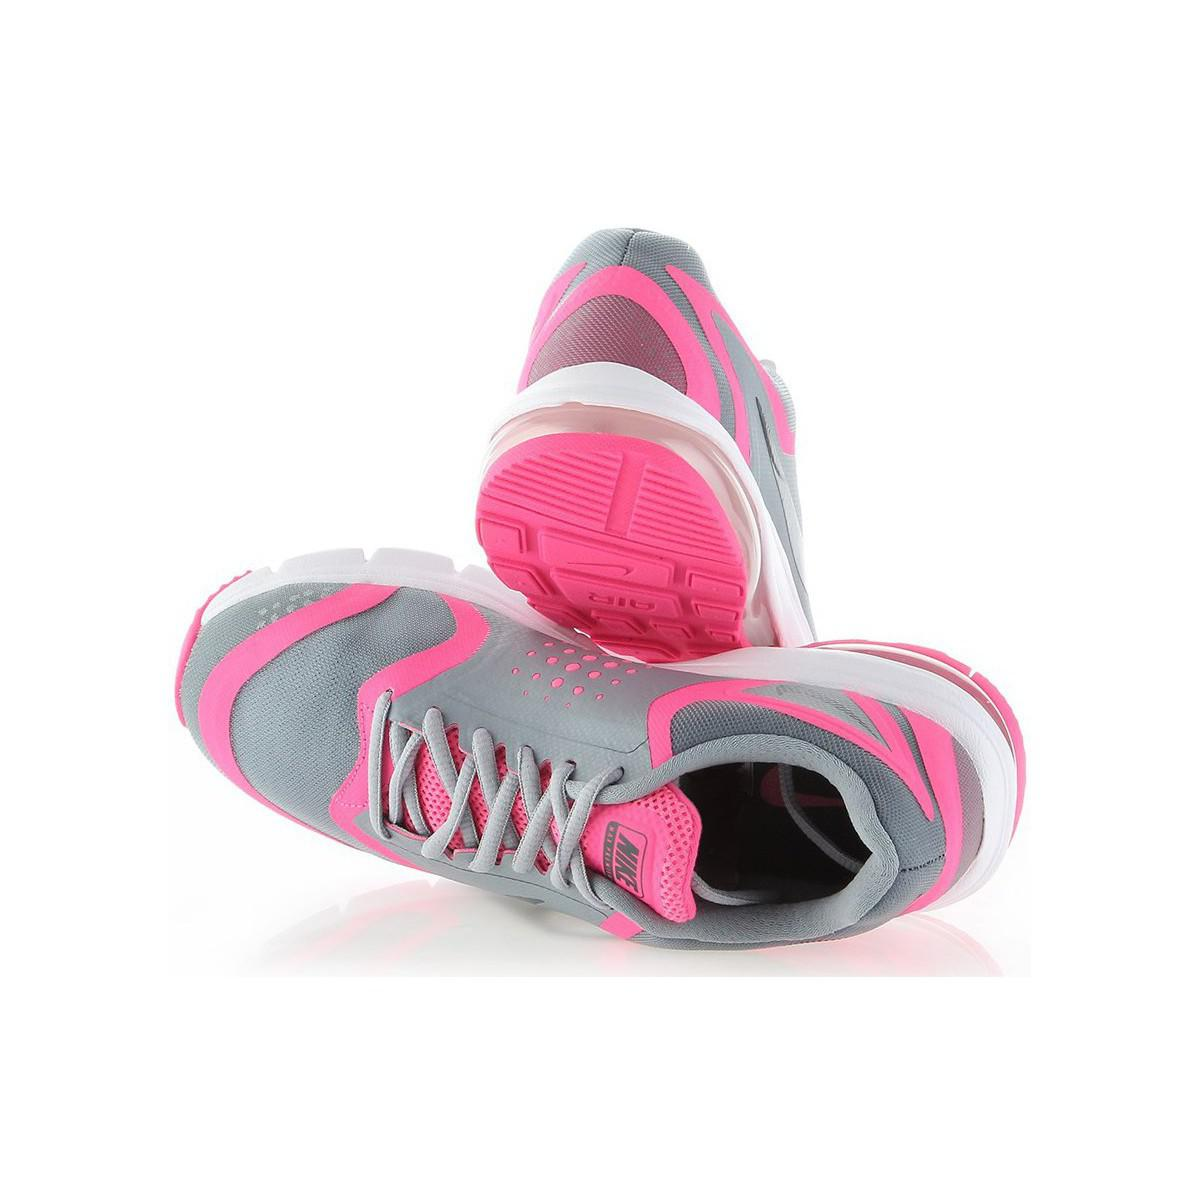 Nike Wmns Air Max Premiere Run Women's Running Trainers In White